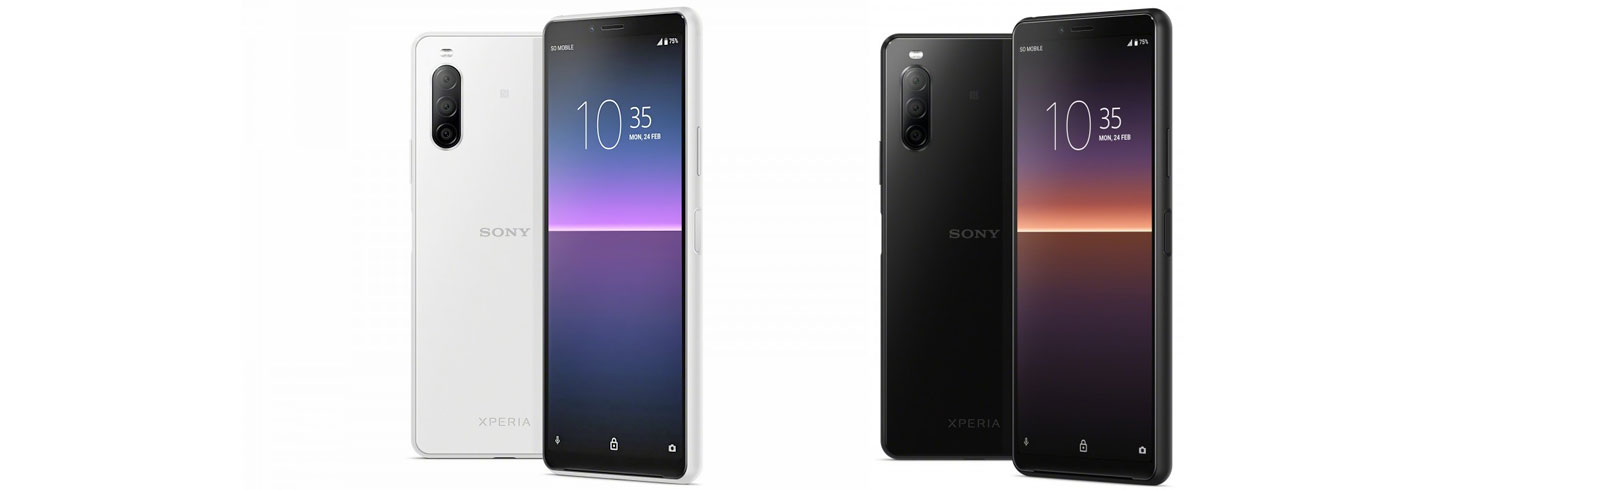 """Sony Xperia 10 II goes official with Snapdragon 665, 6"""" OLED FHD+ display"""